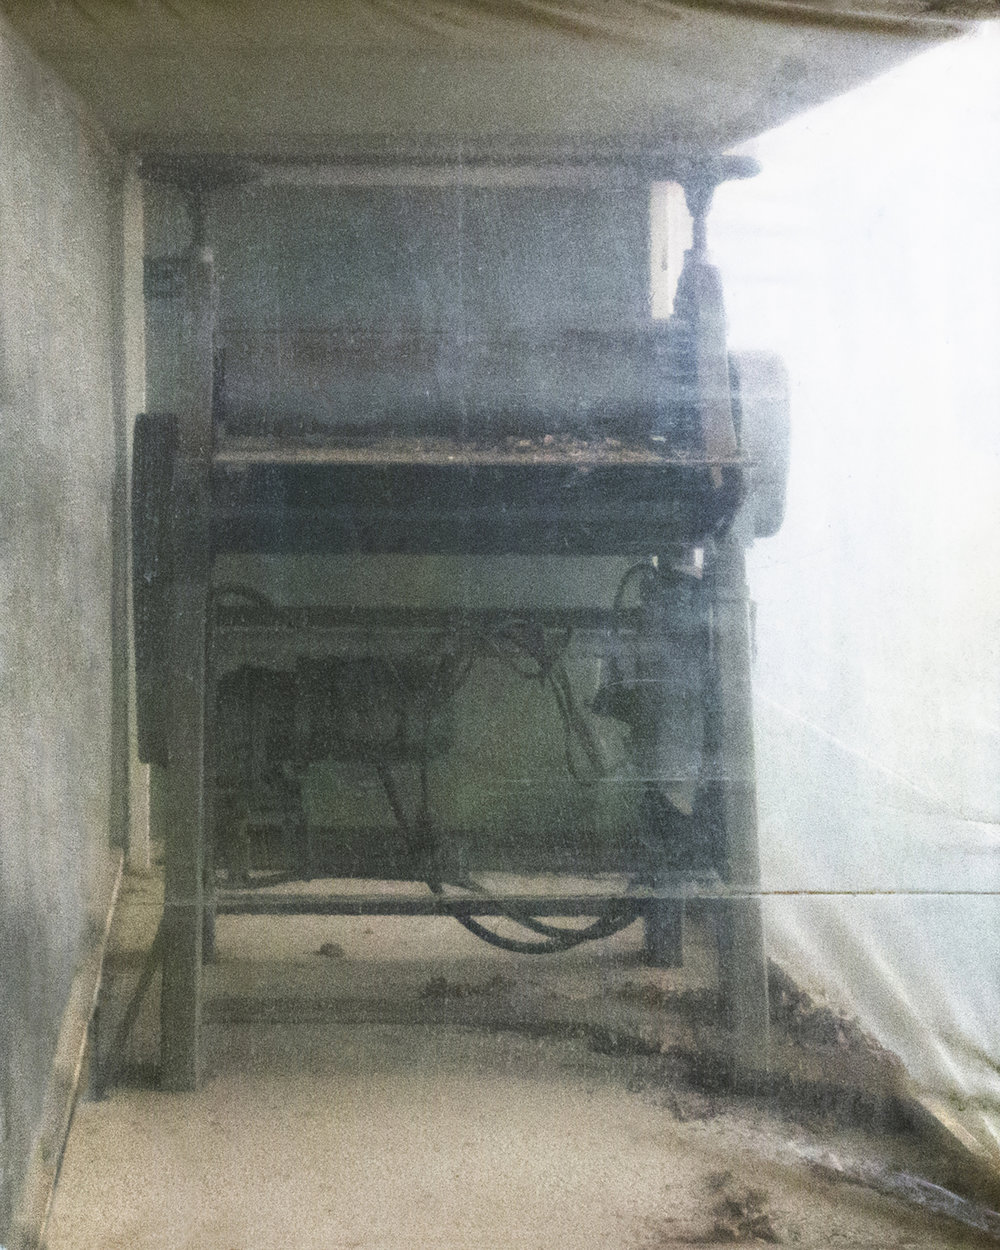 ETCHING PRESS (detail)